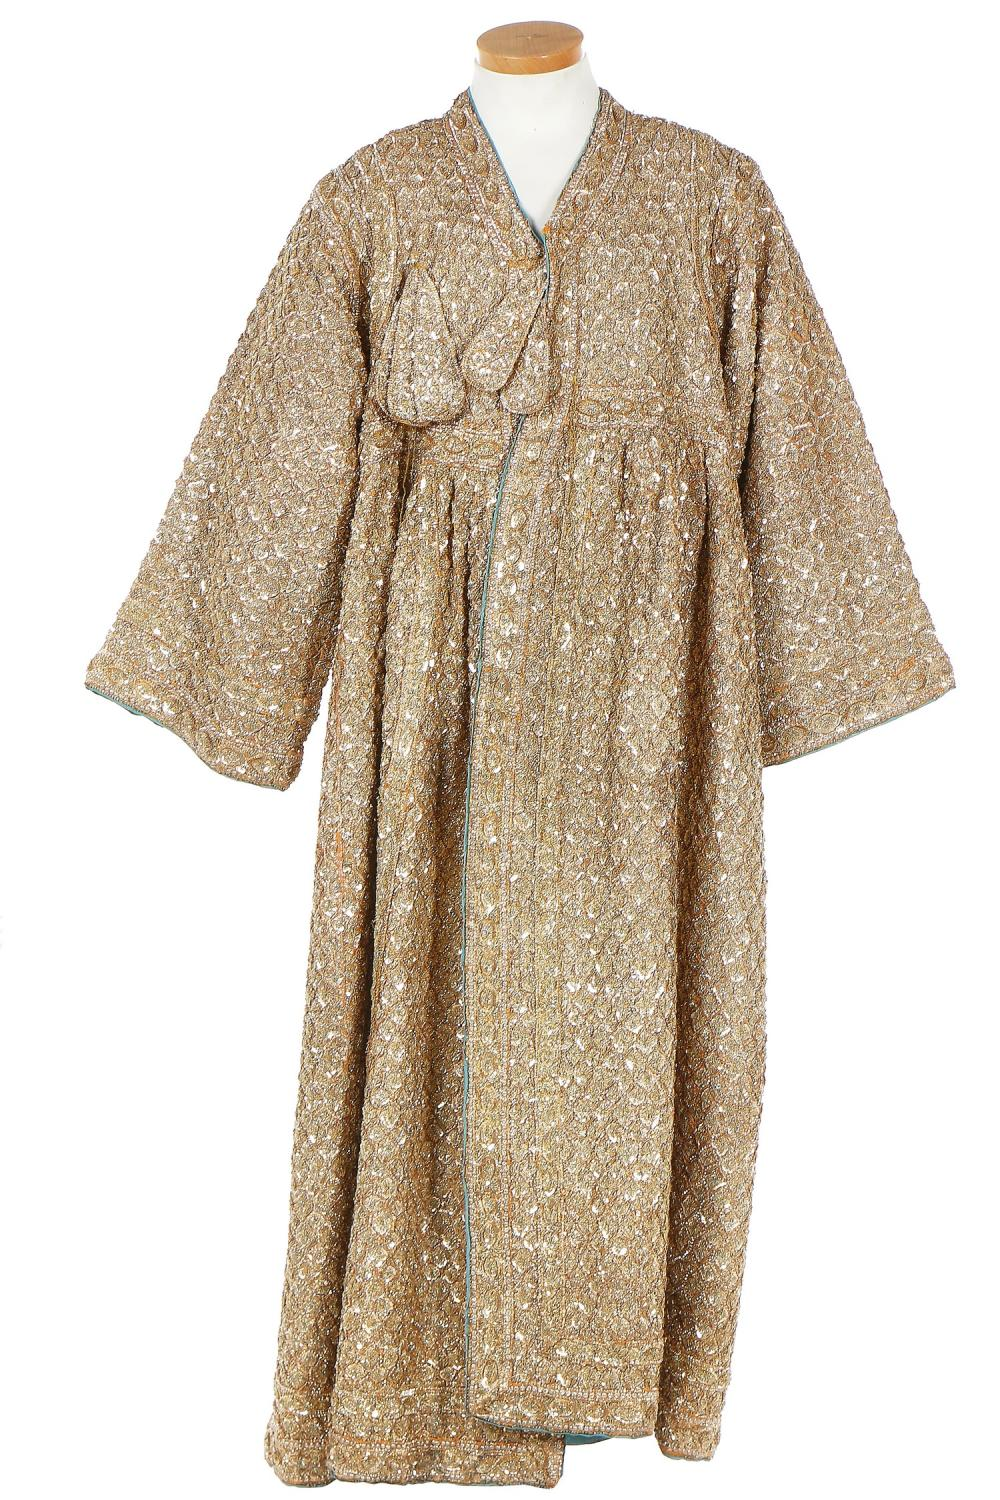 A man's gold sequinned wedding coat, Indian, probably 1950s,